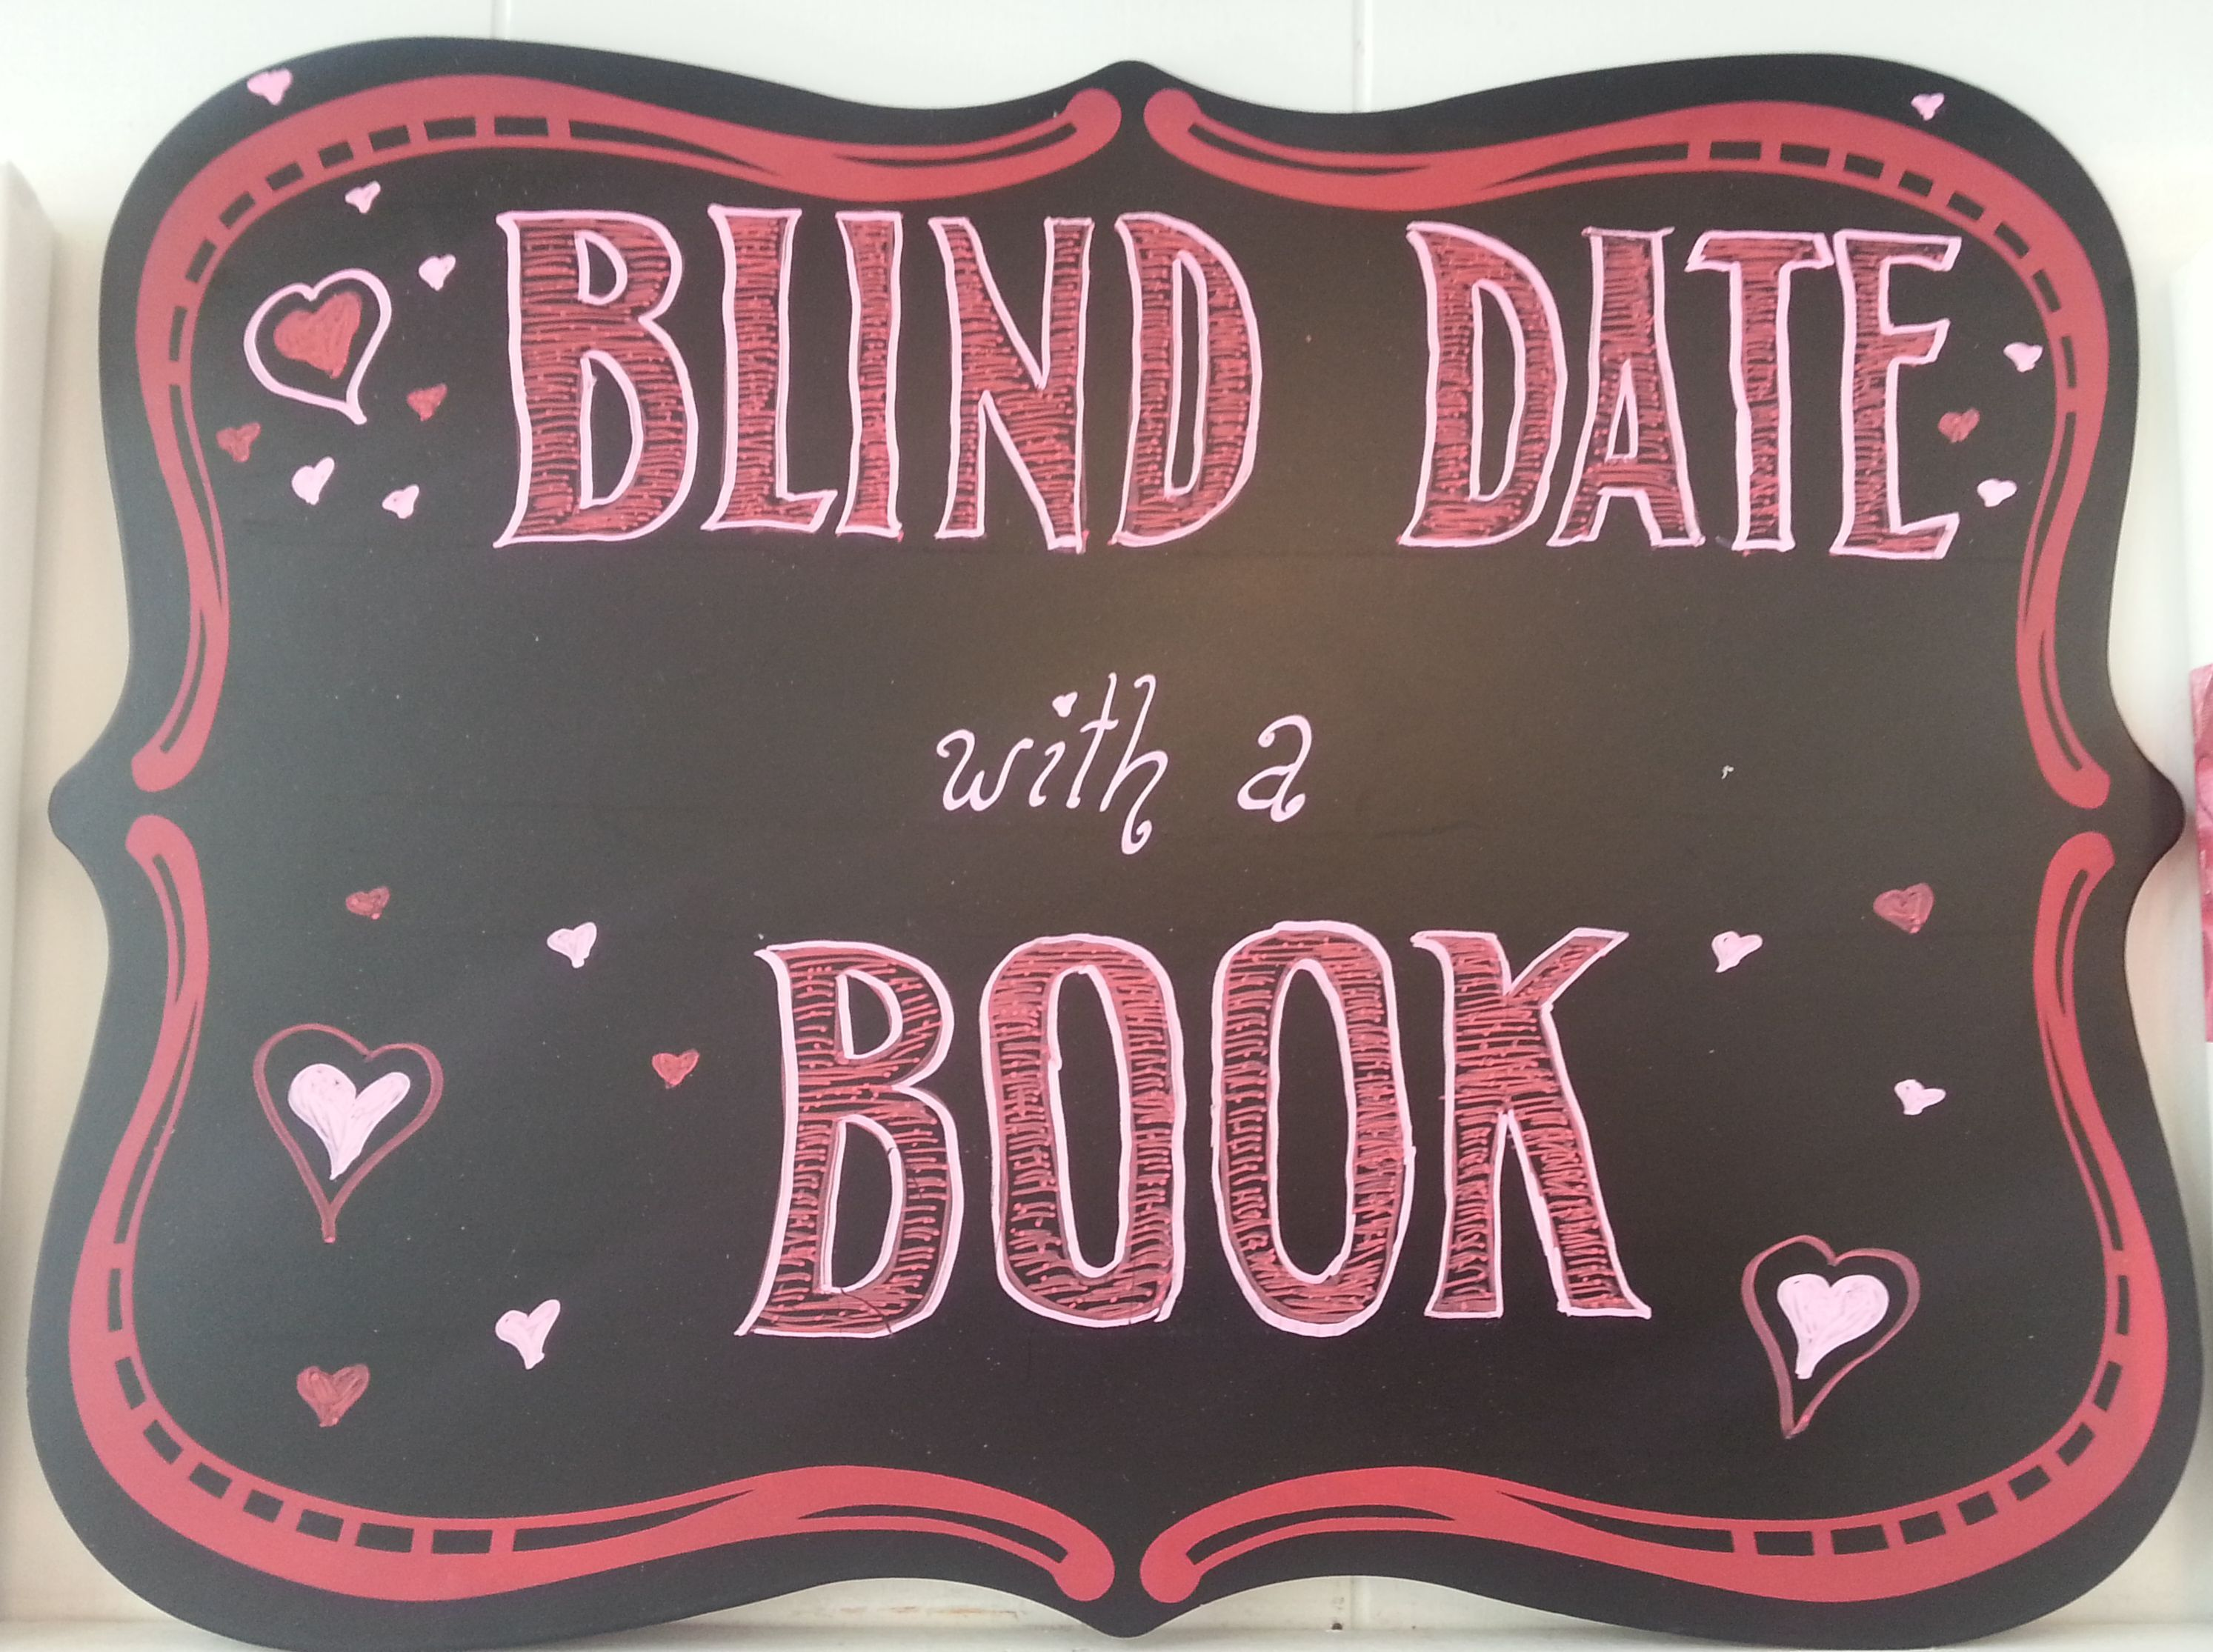 Blind Date With A Books Sign The Book Nook In Brenham Tx